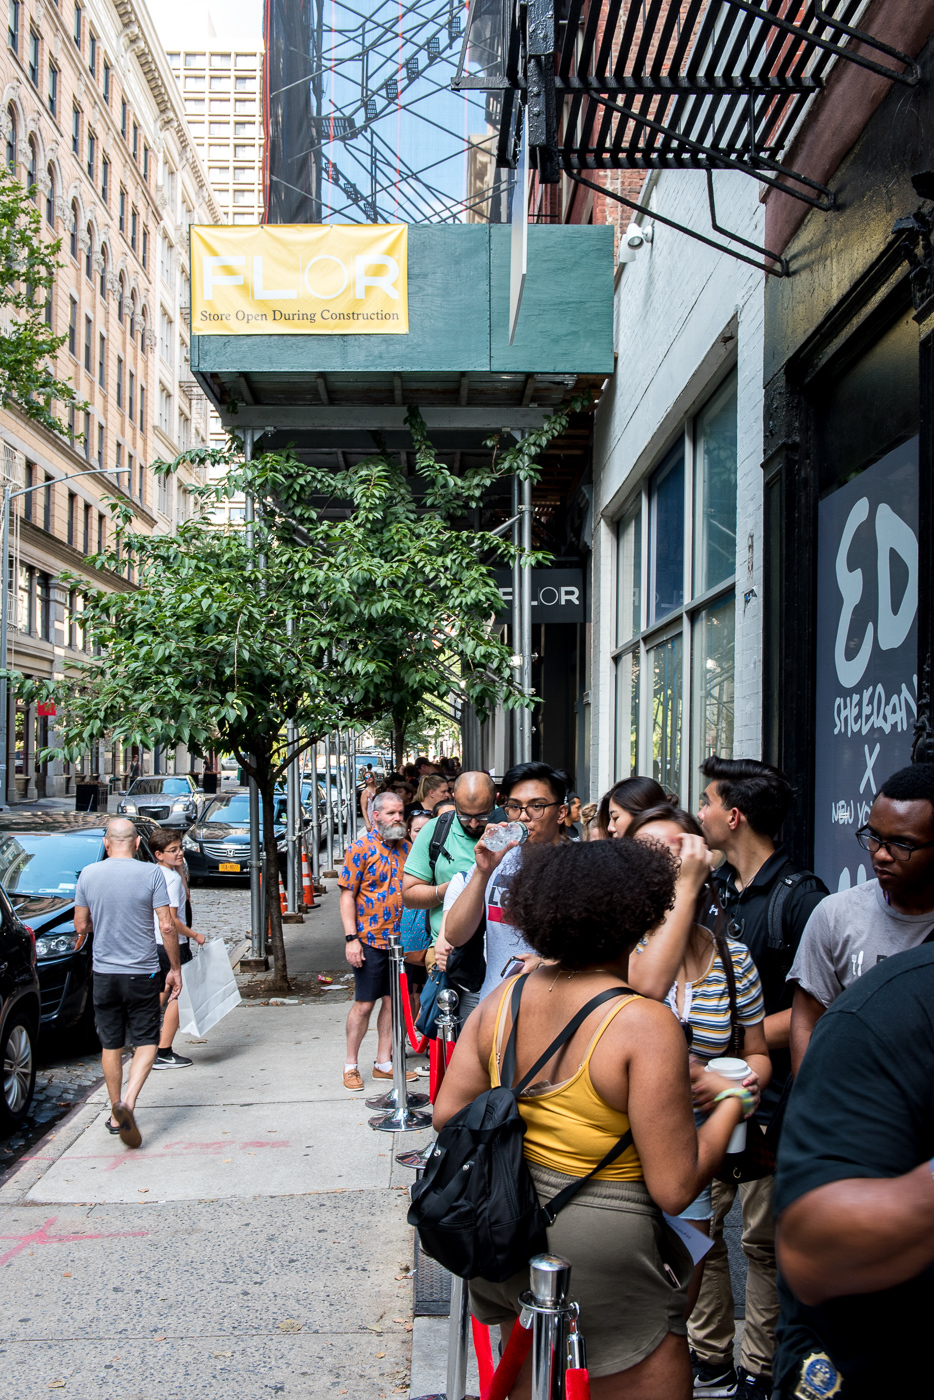 Ed Sheeran, pop up, how to build a pop up, New York pop up, things to see in New York, short-term retail